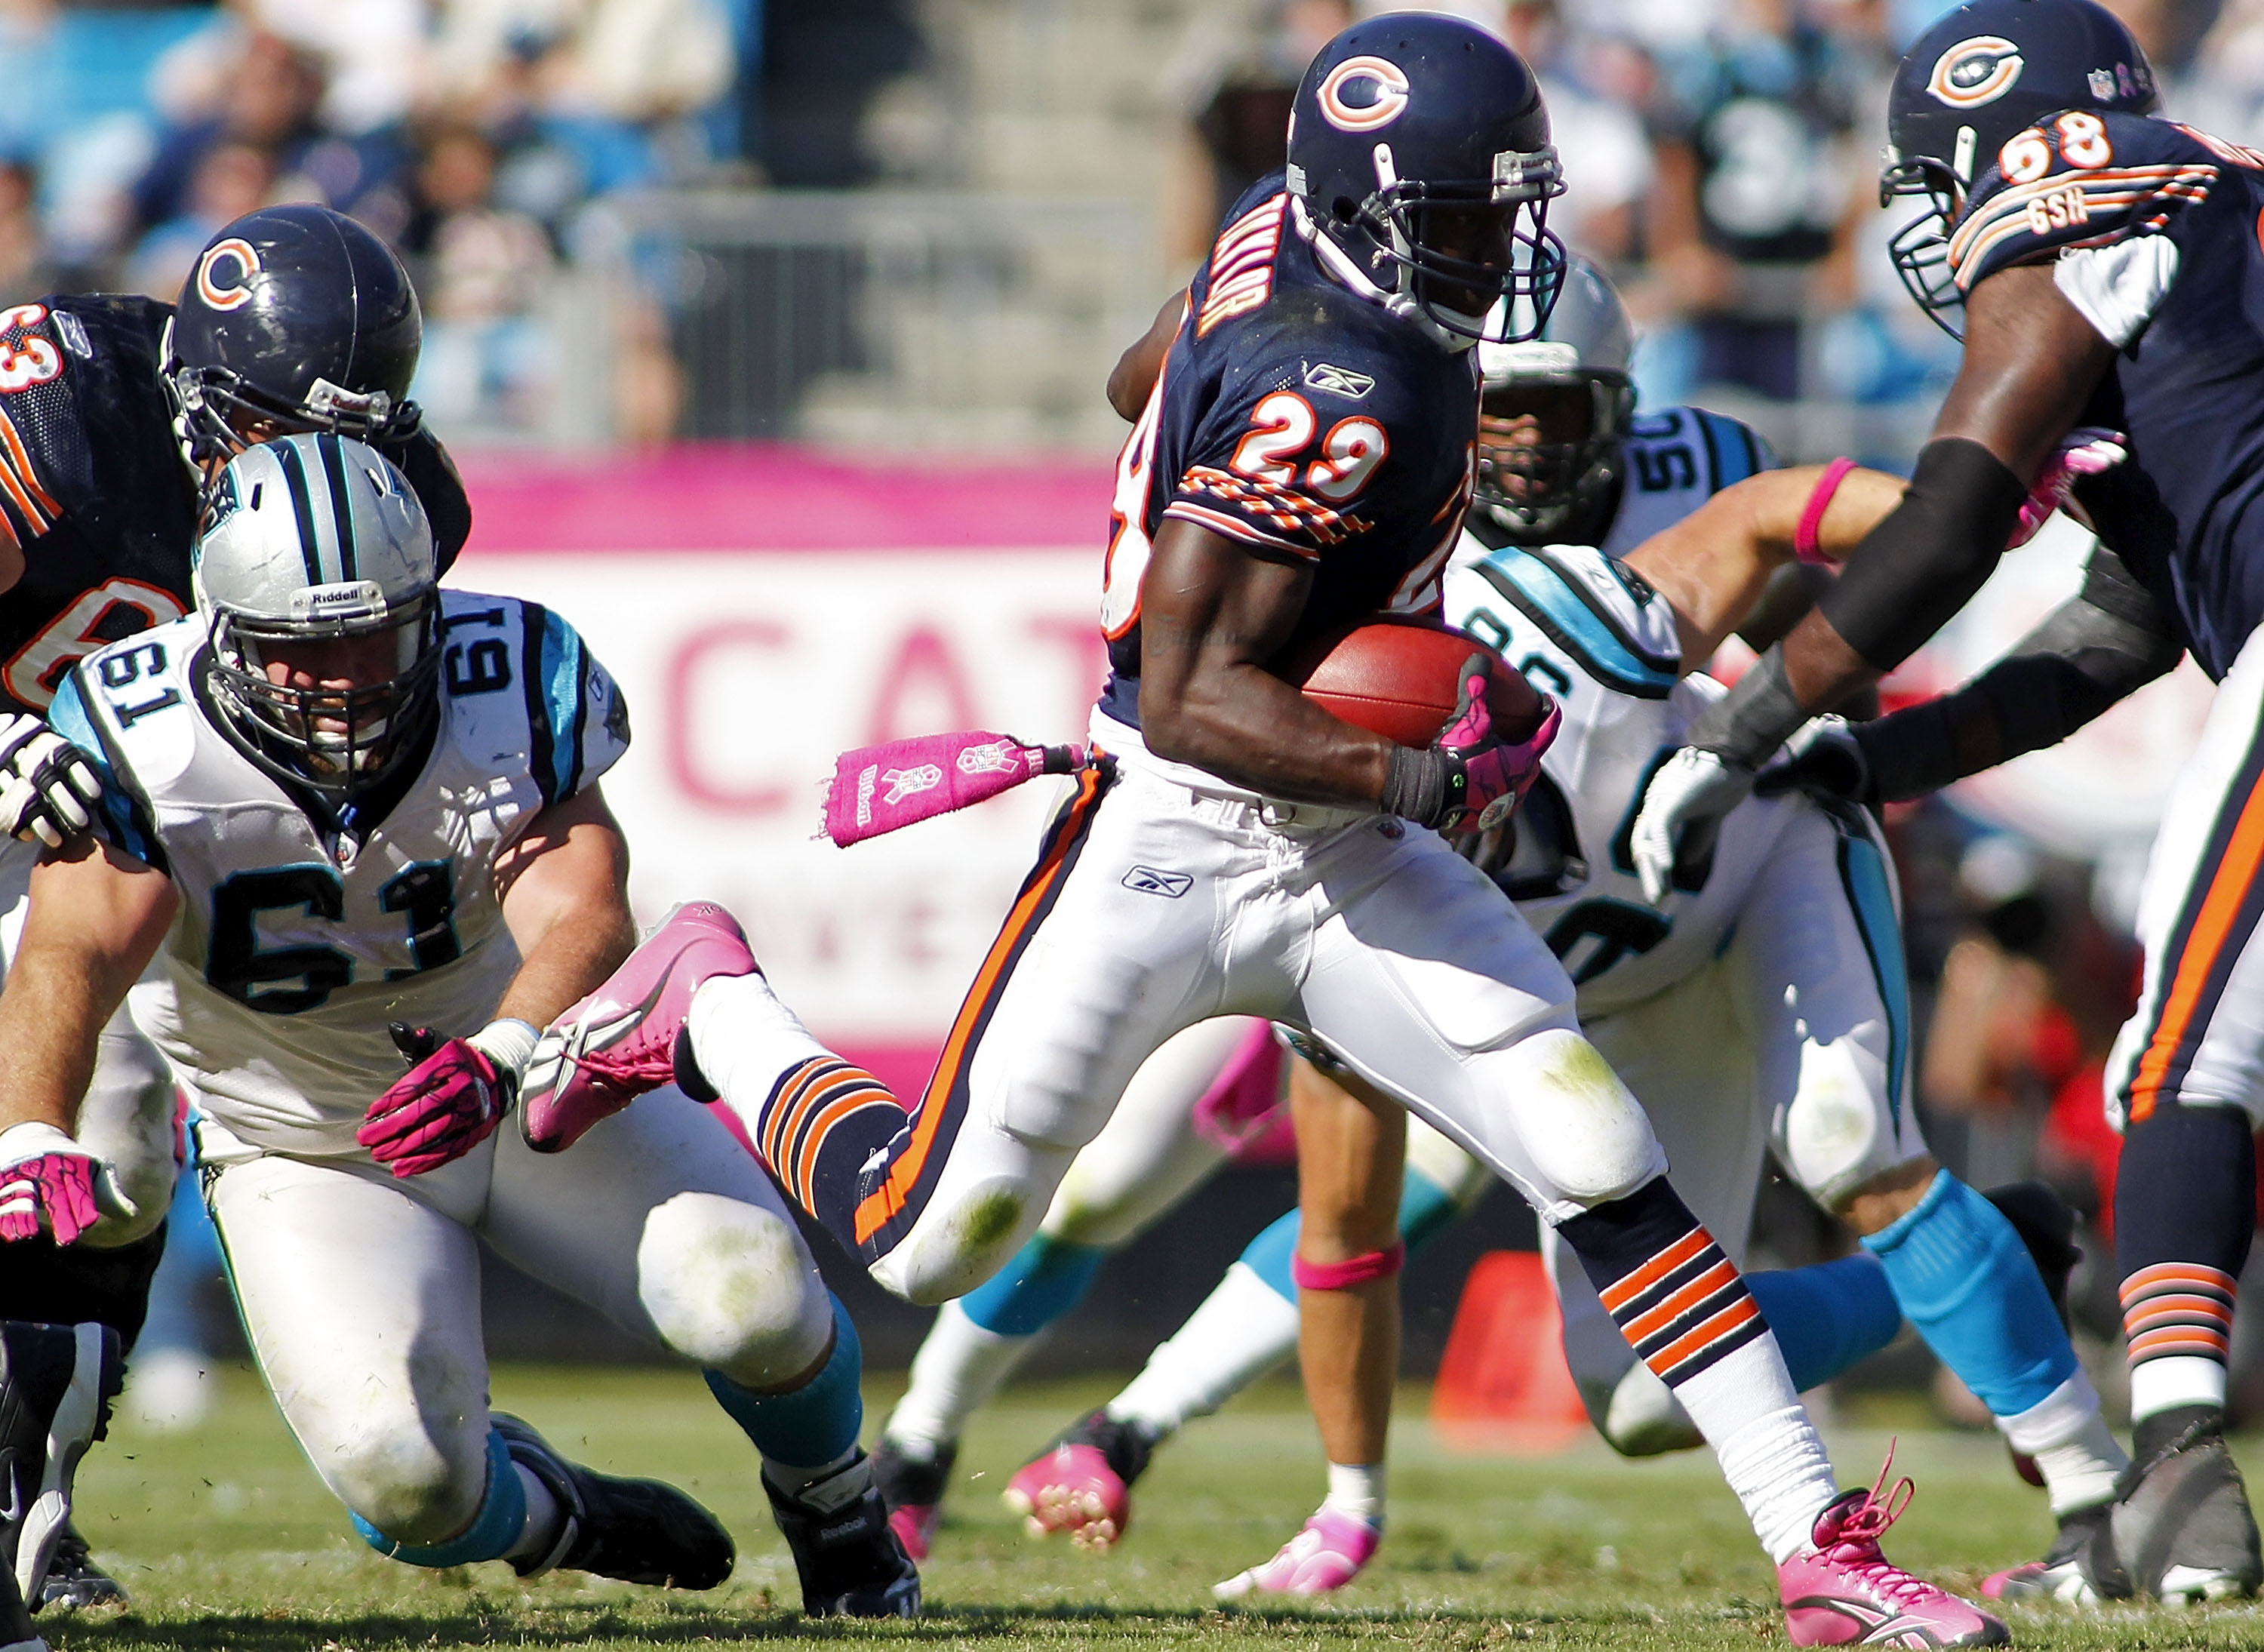 CHARLOTTE, NC - OCTOBER 10: Running back Chester Taylor #29 of the Chicago Bears runs with the ball past defensive tackle Derek Landri #61 of the Carolina Panthers at Bank of America Stadium on October 10, 2010 in Charlotte, North Carolina.  (Photo by Geo